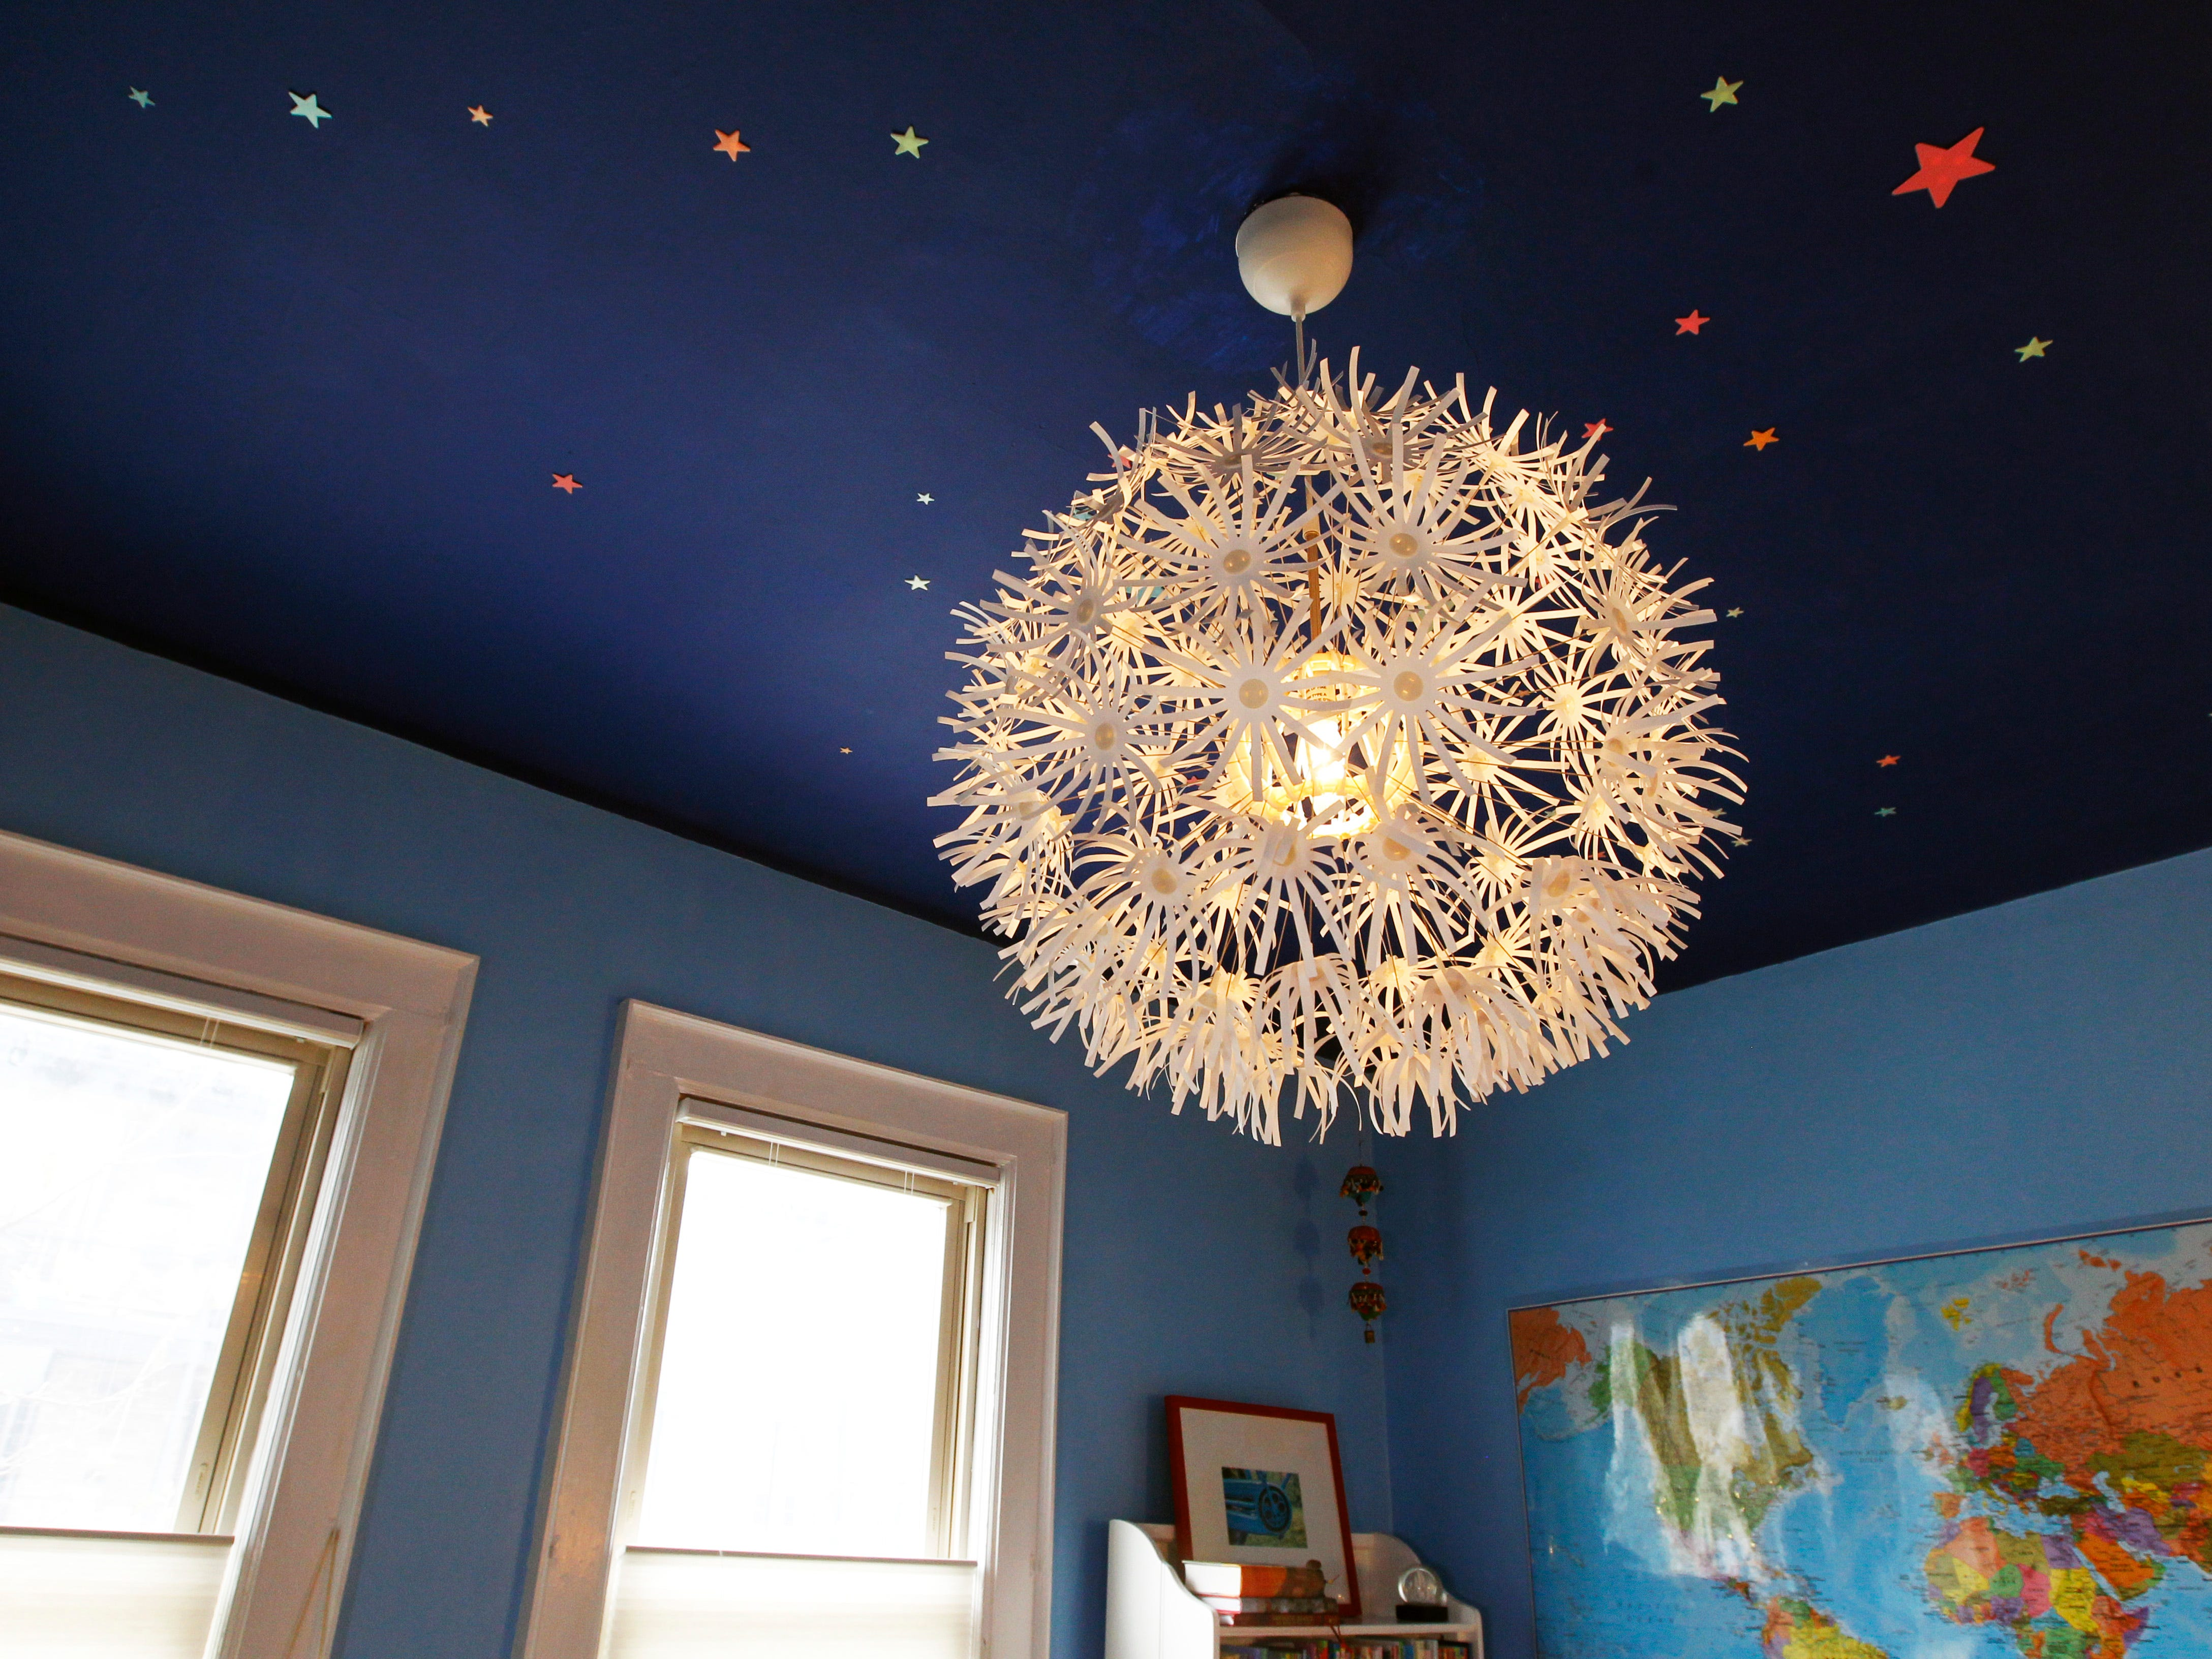 A whimsical light shade is almost moon-like as it hangs against a ceiling of stars in the Elena's bedroom.